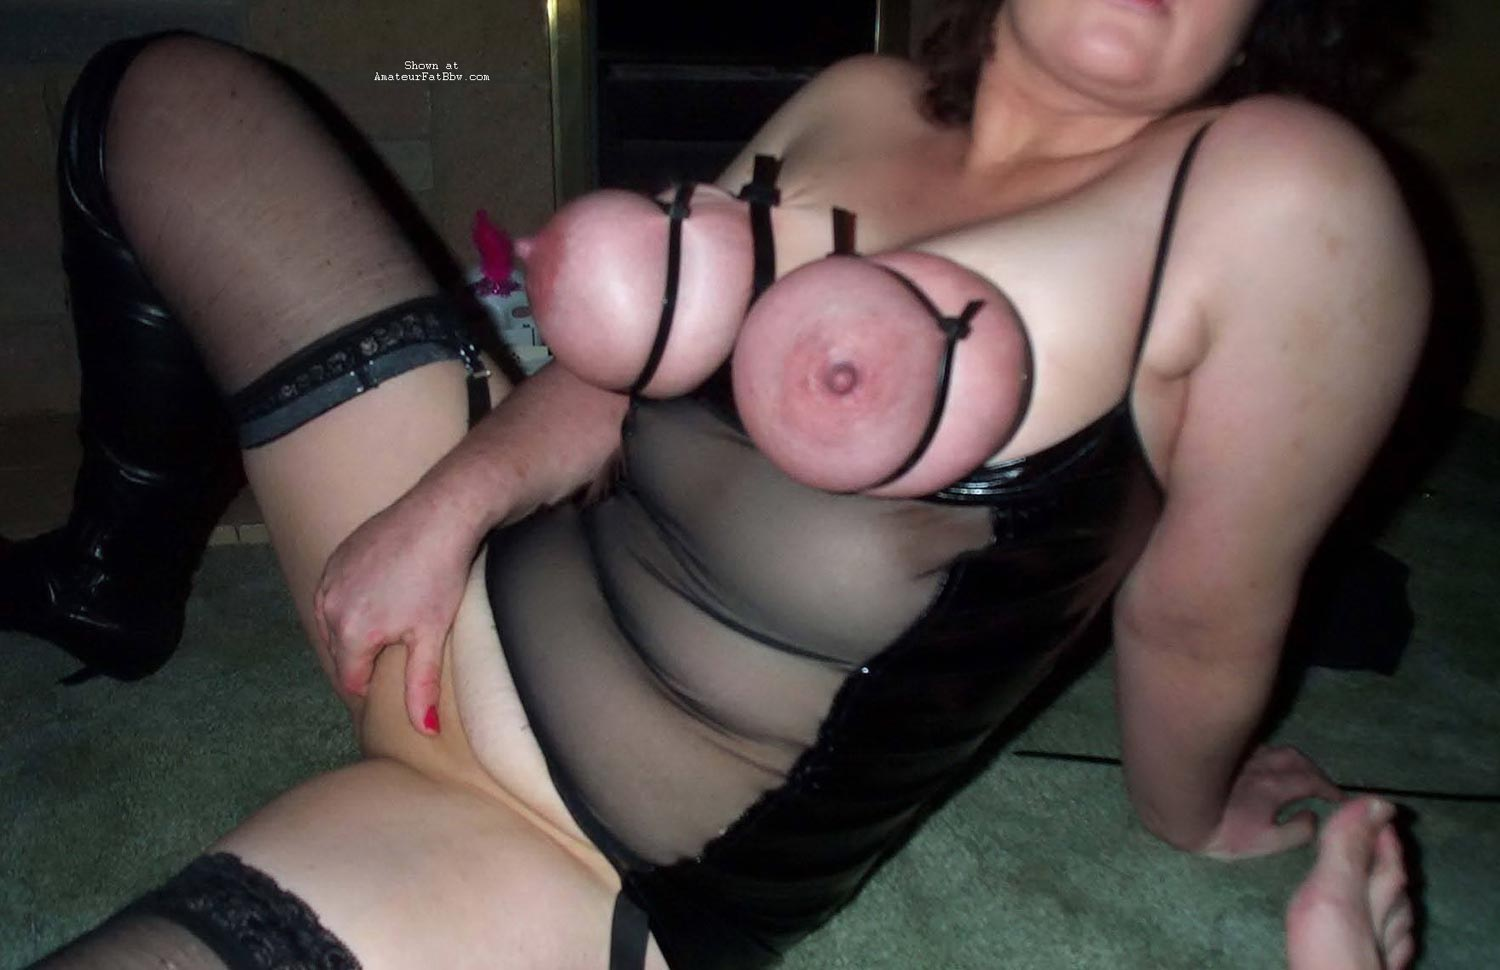 Mature women bondage videos